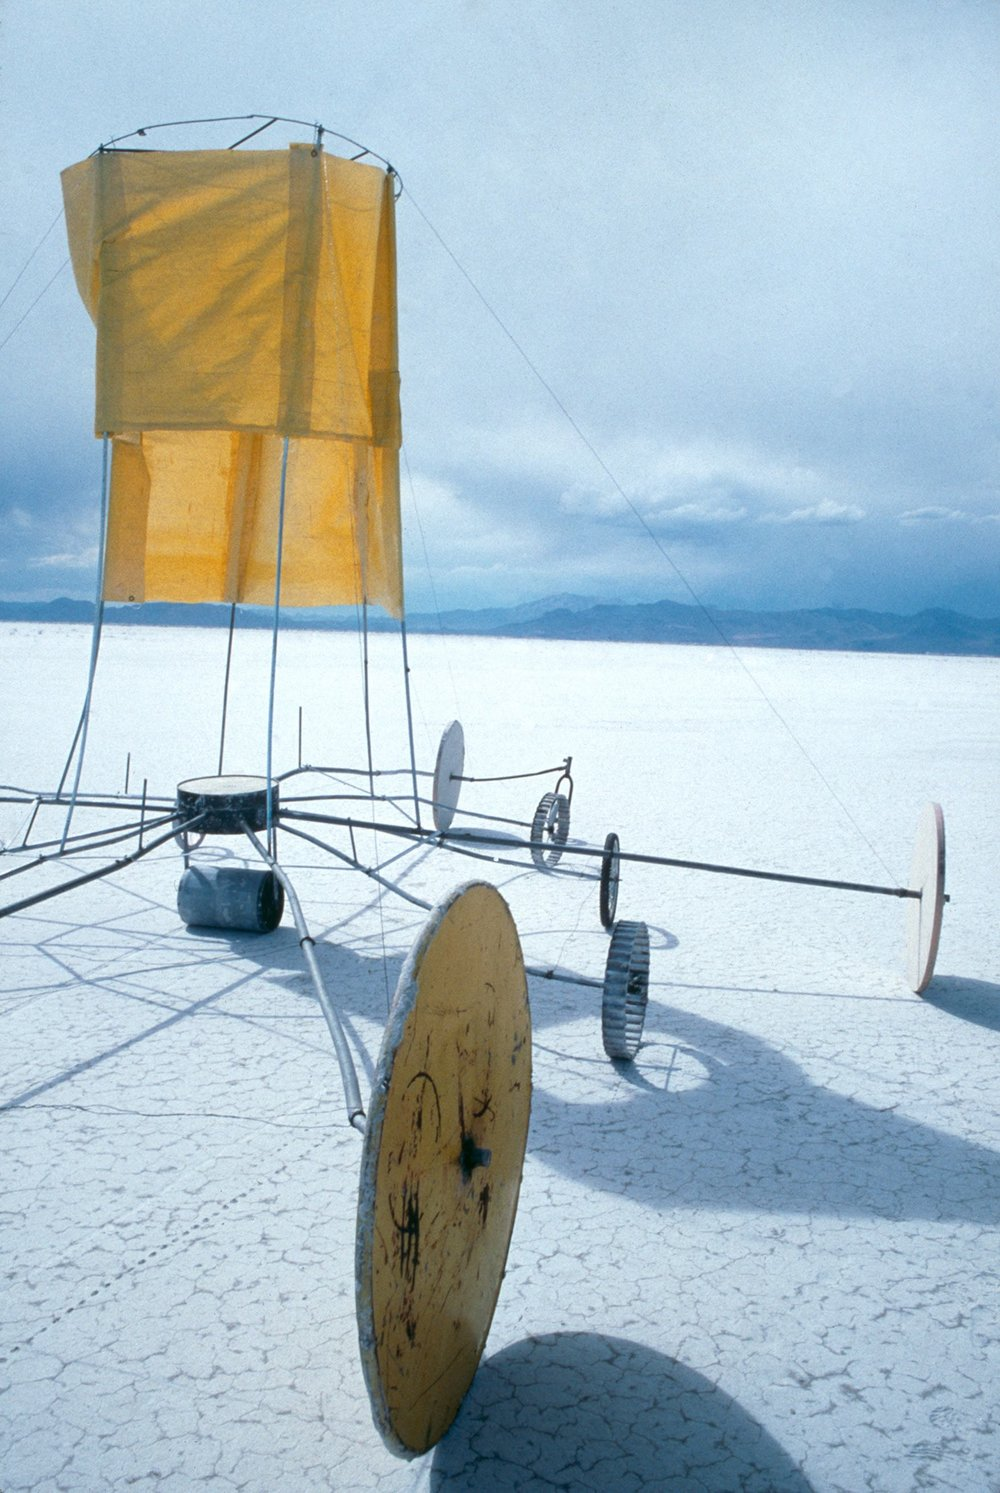 Wheels of Fortune,   1998 Commission for  The Center For Land Use Interpretation  Site Specific Sculpture, Salt Flats, Nevada